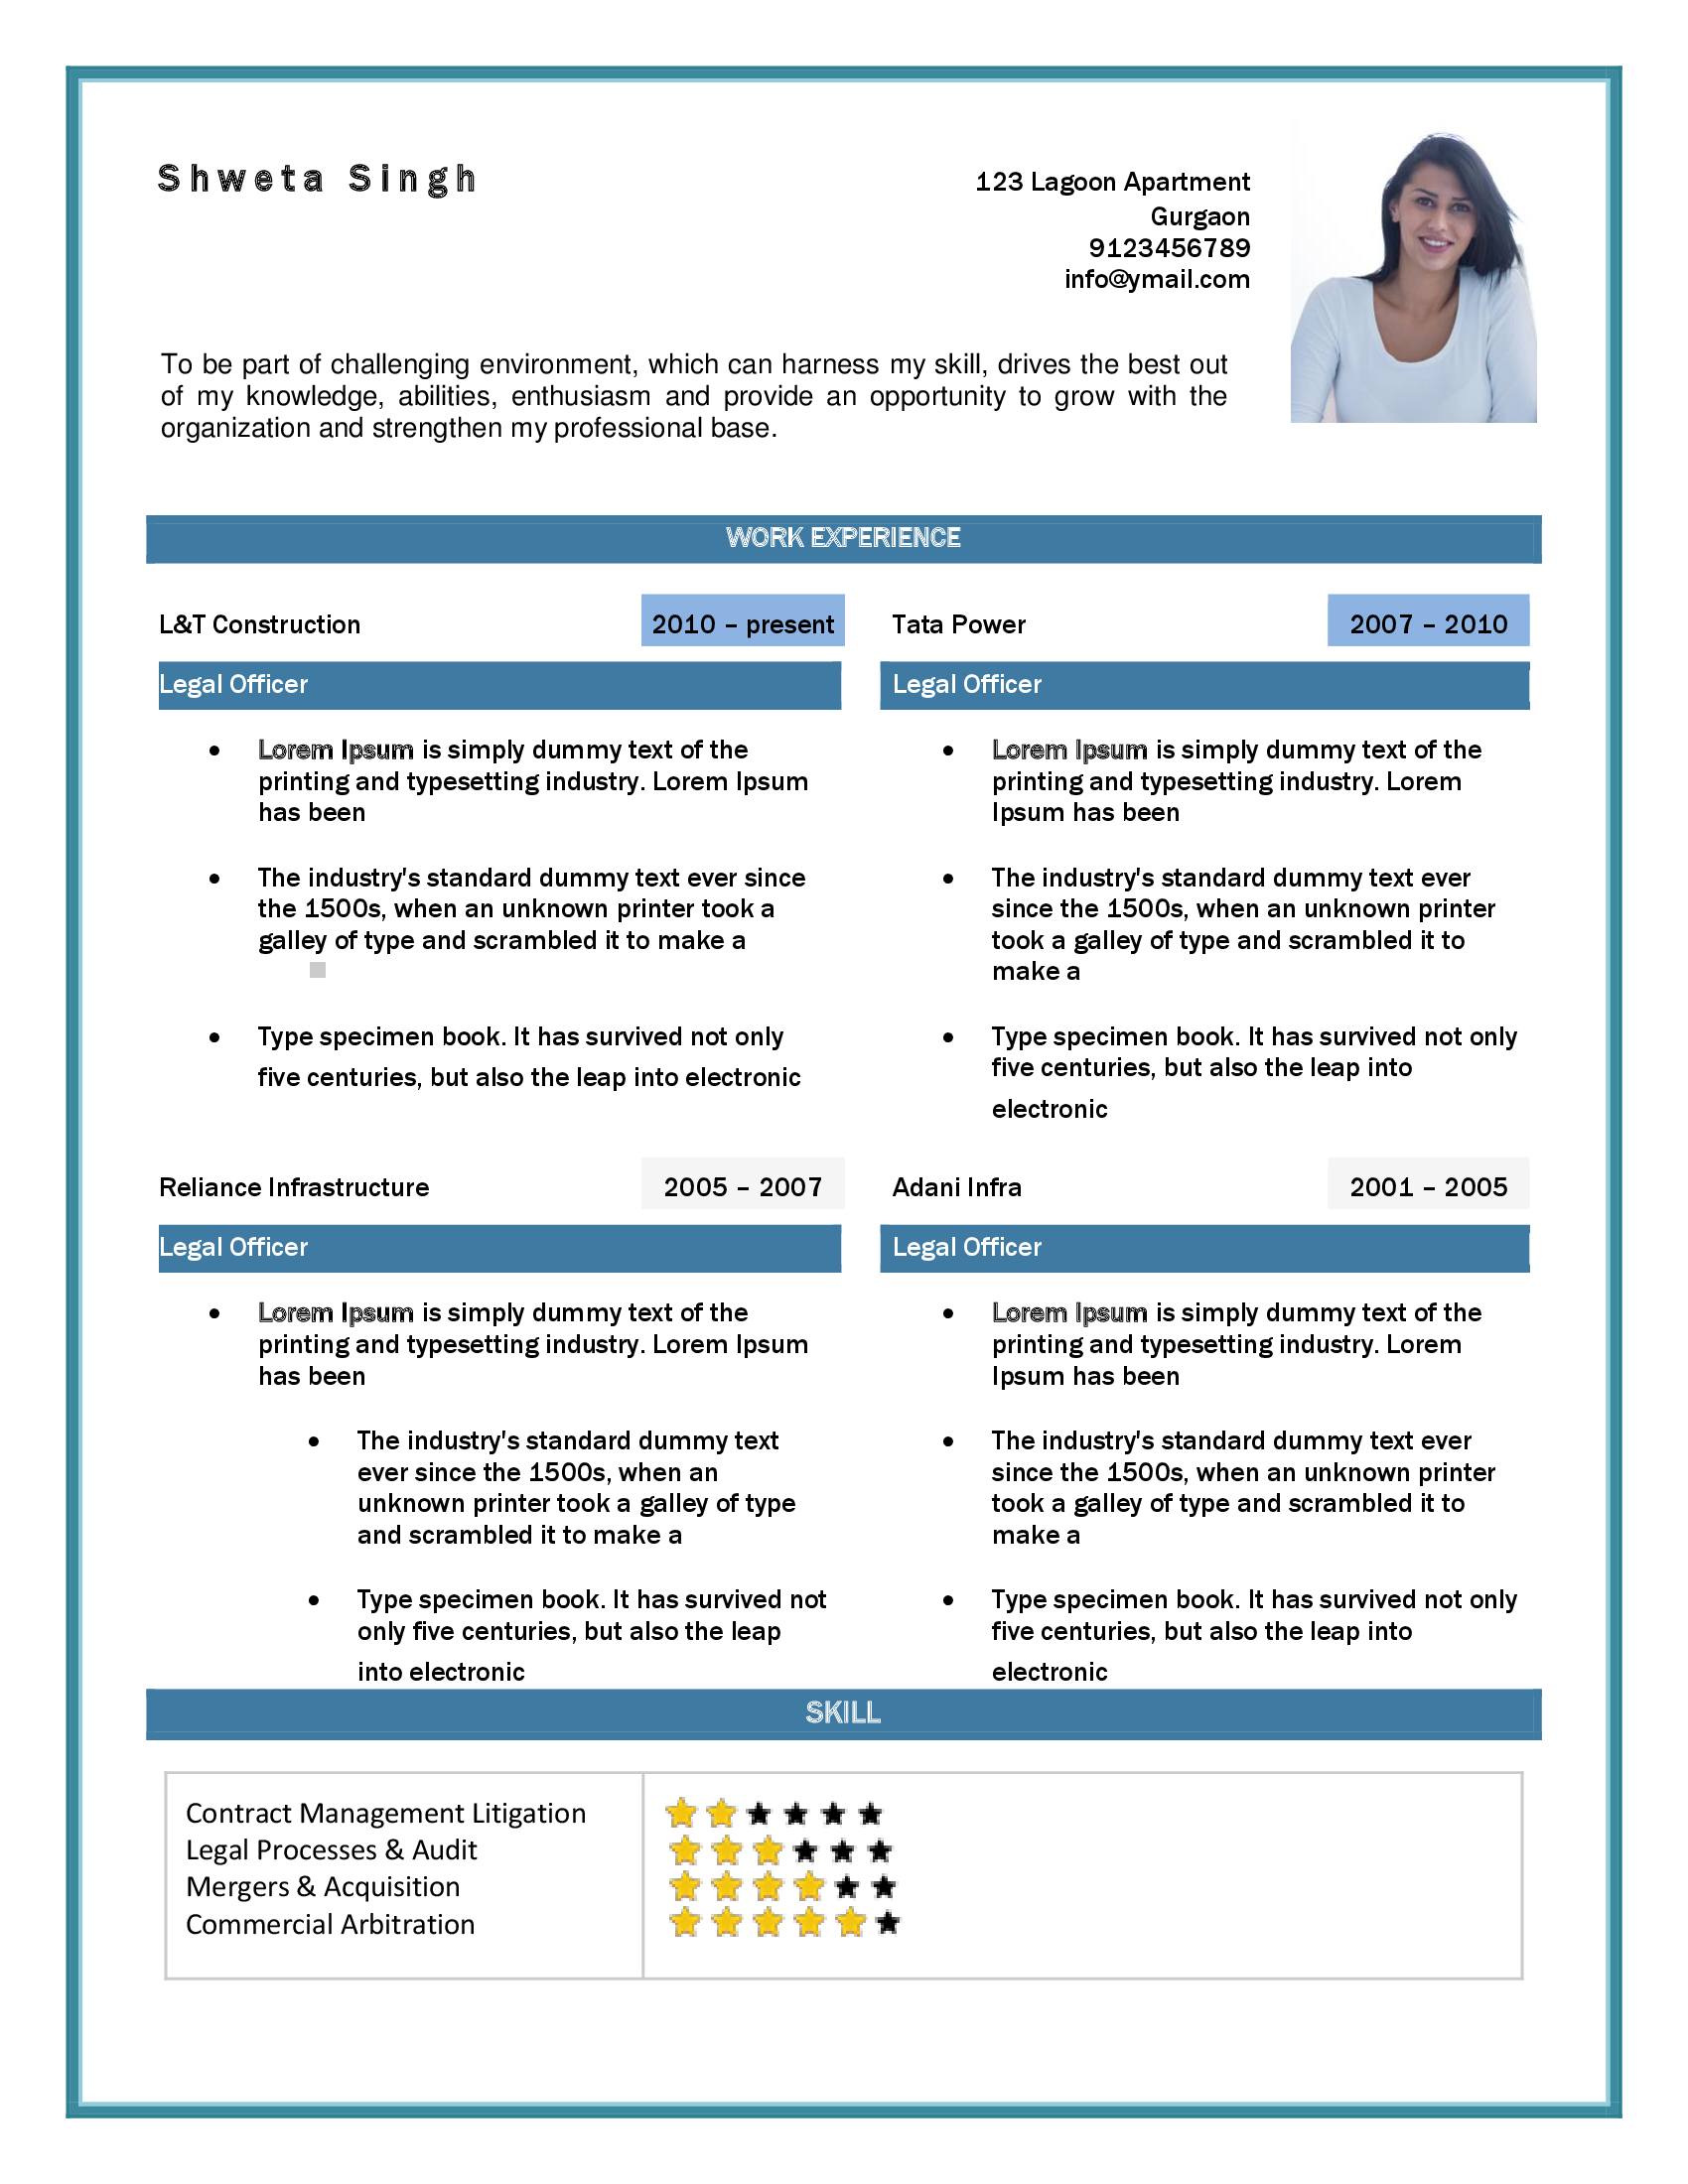 Opposenewapstandardsus  Seductive Hr Executive Resume  Resume For Hr Executive  Hr Executive  With Goodlooking Enter Your Details With Adorable One Page Resume Template Also Welder Resume In Addition Resume Worksheet And Academic Resume Template As Well As Craigslist Resumes Additionally It Manager Resume From Resumetemplatesamplescom With Opposenewapstandardsus  Goodlooking Hr Executive Resume  Resume For Hr Executive  Hr Executive  With Adorable Enter Your Details And Seductive One Page Resume Template Also Welder Resume In Addition Resume Worksheet From Resumetemplatesamplescom